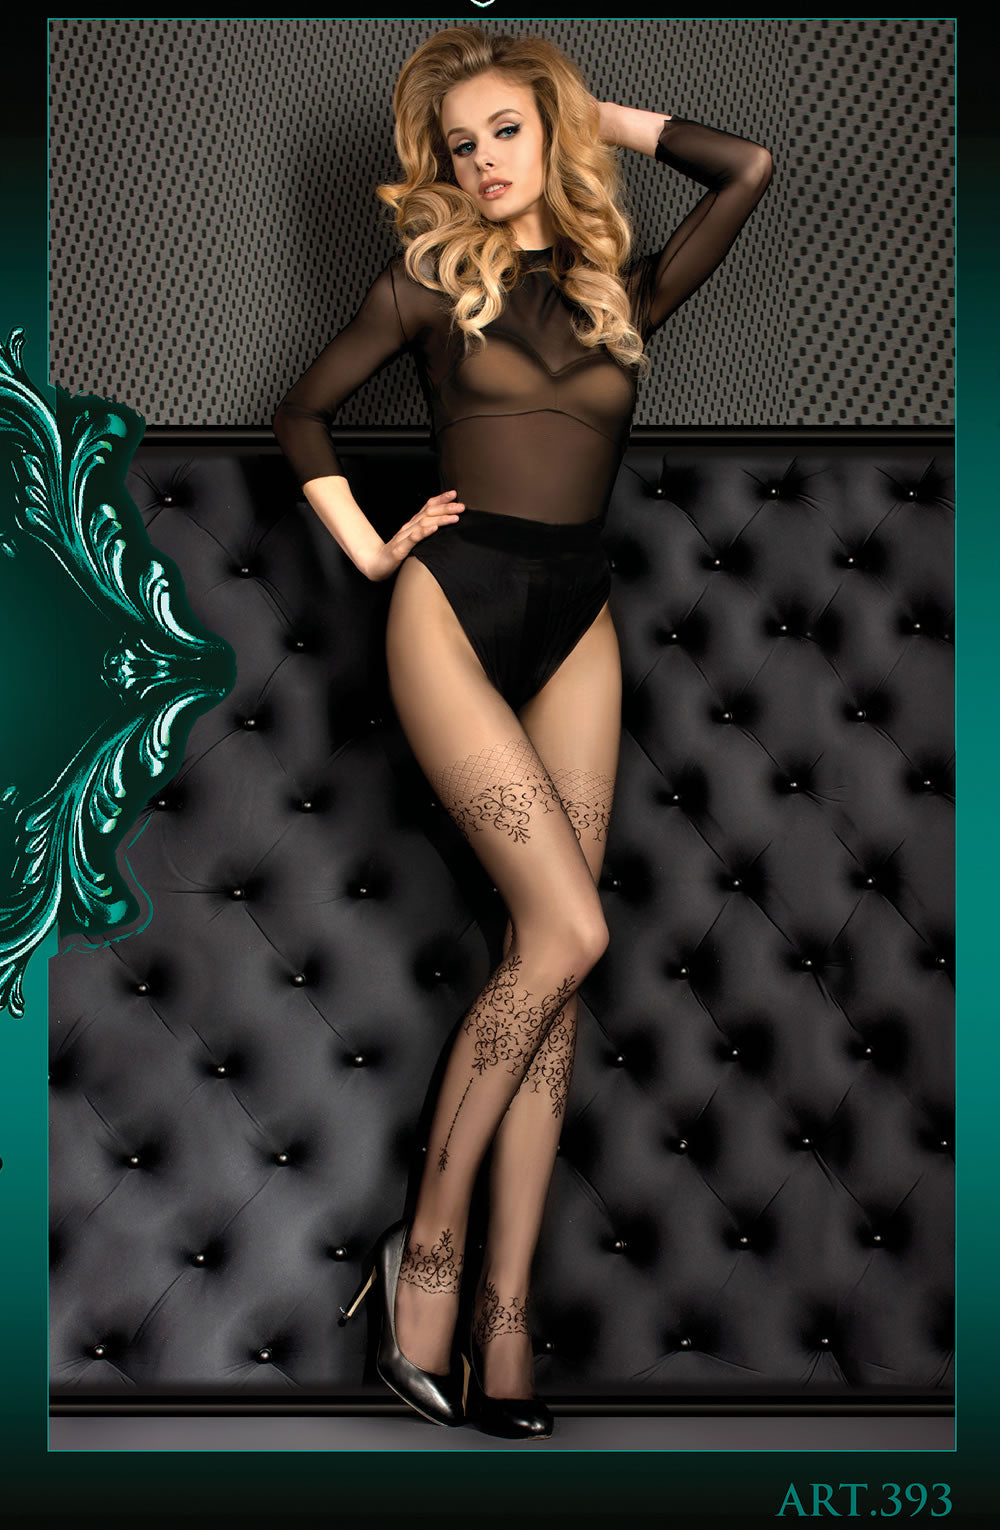 Ballerina 393 Tights Nero ()  Ballerina, Hosiery, NEWLY-IMPORTED, Tights - So Luxe Lingerie